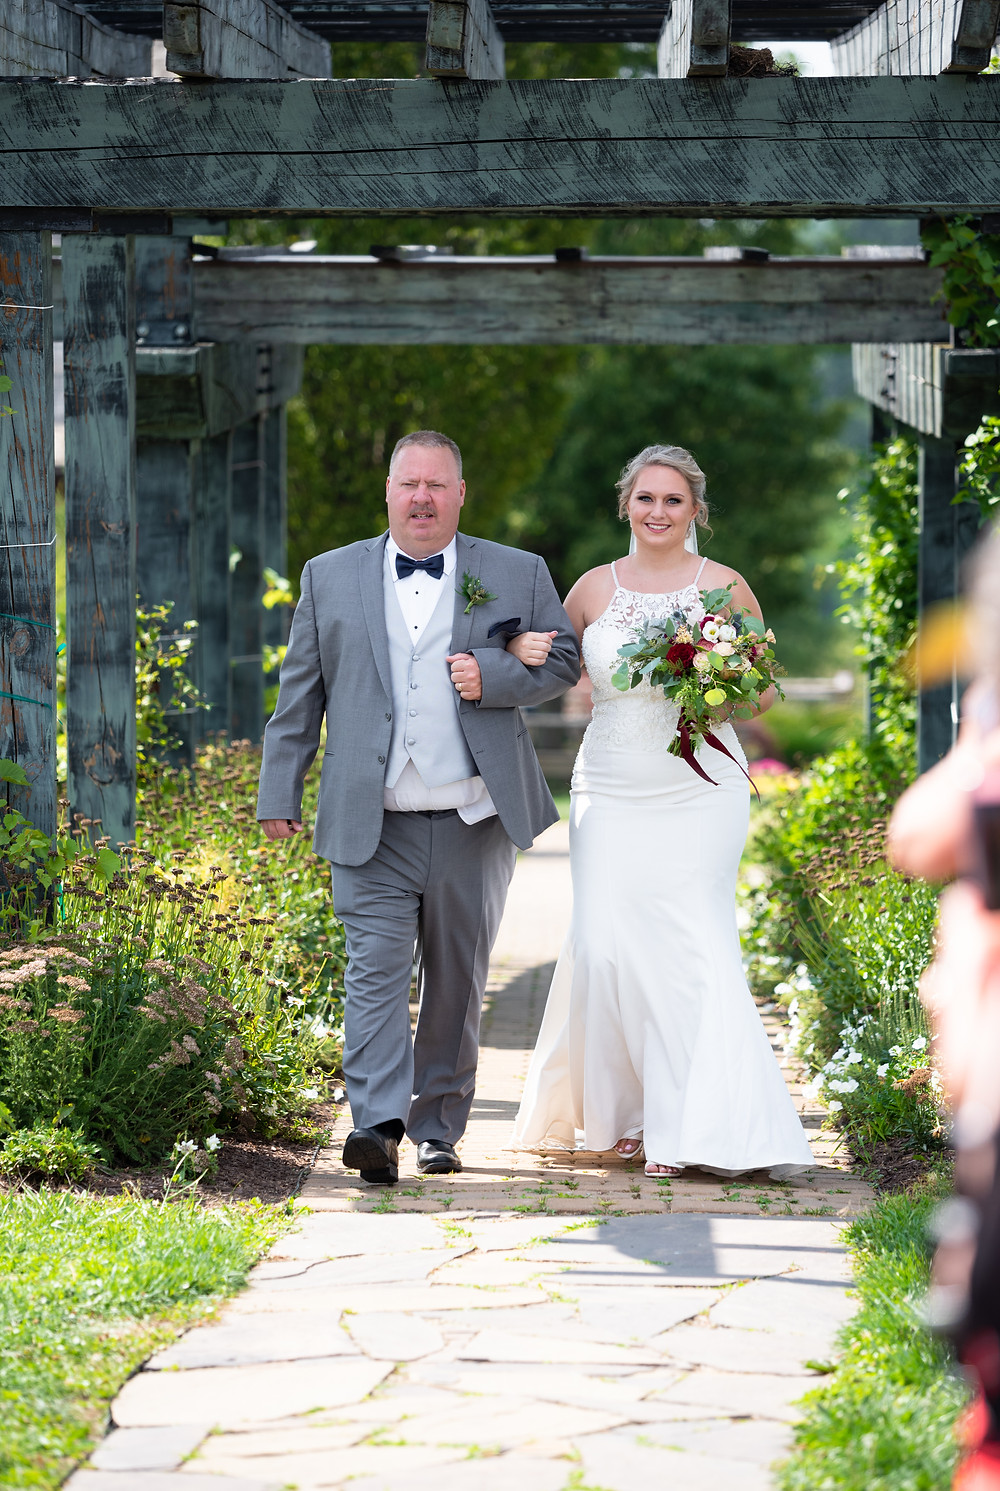 Father of the bride walking her down the aisle at Rich Farms Nursery